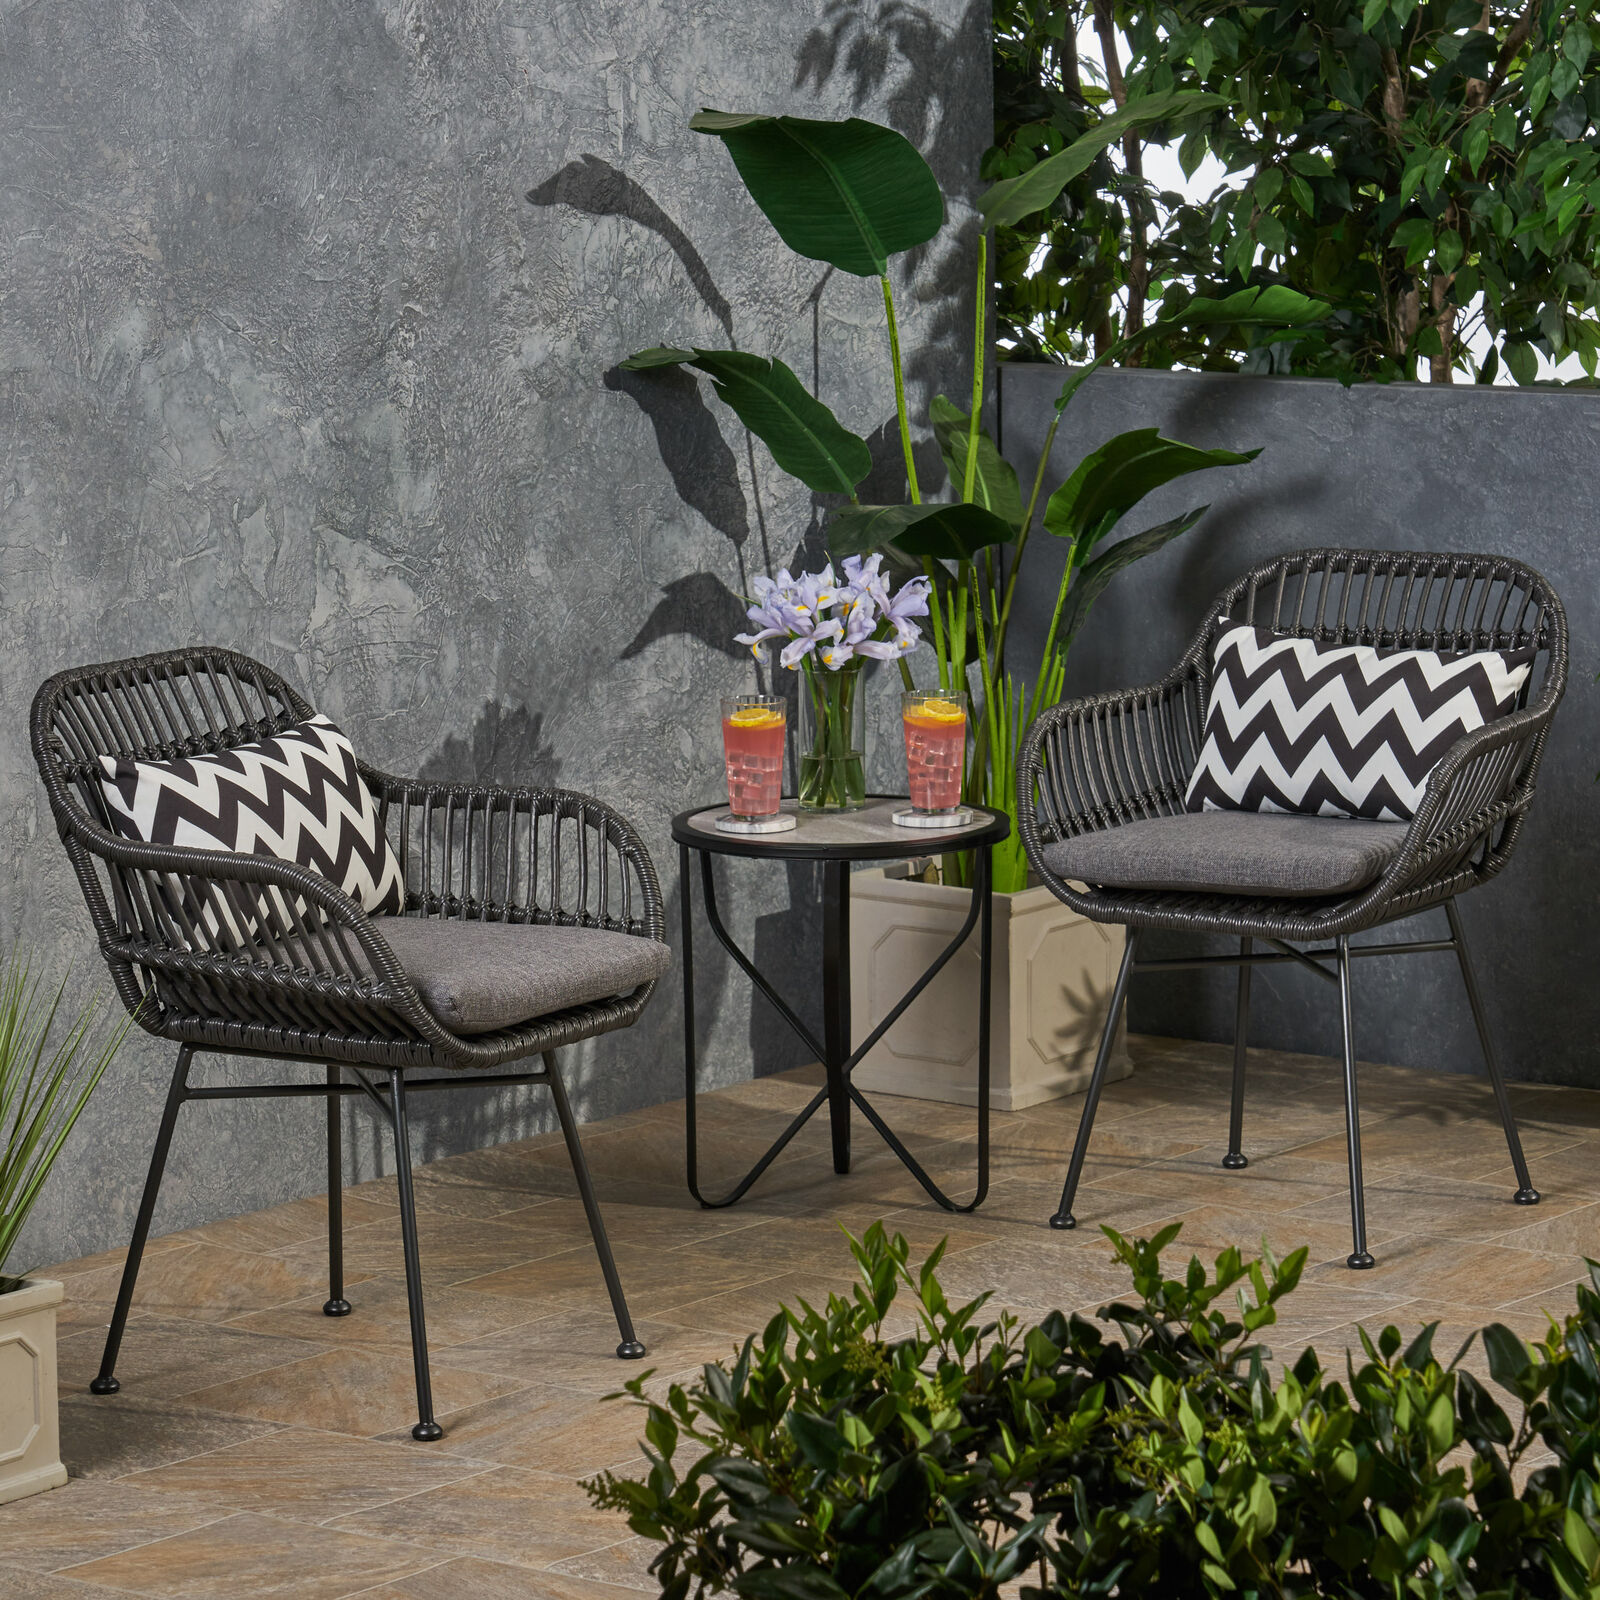 Rodney Outdoor Woven Faux Rattan Chairs with Cushions (Set of 2) Home & Garden